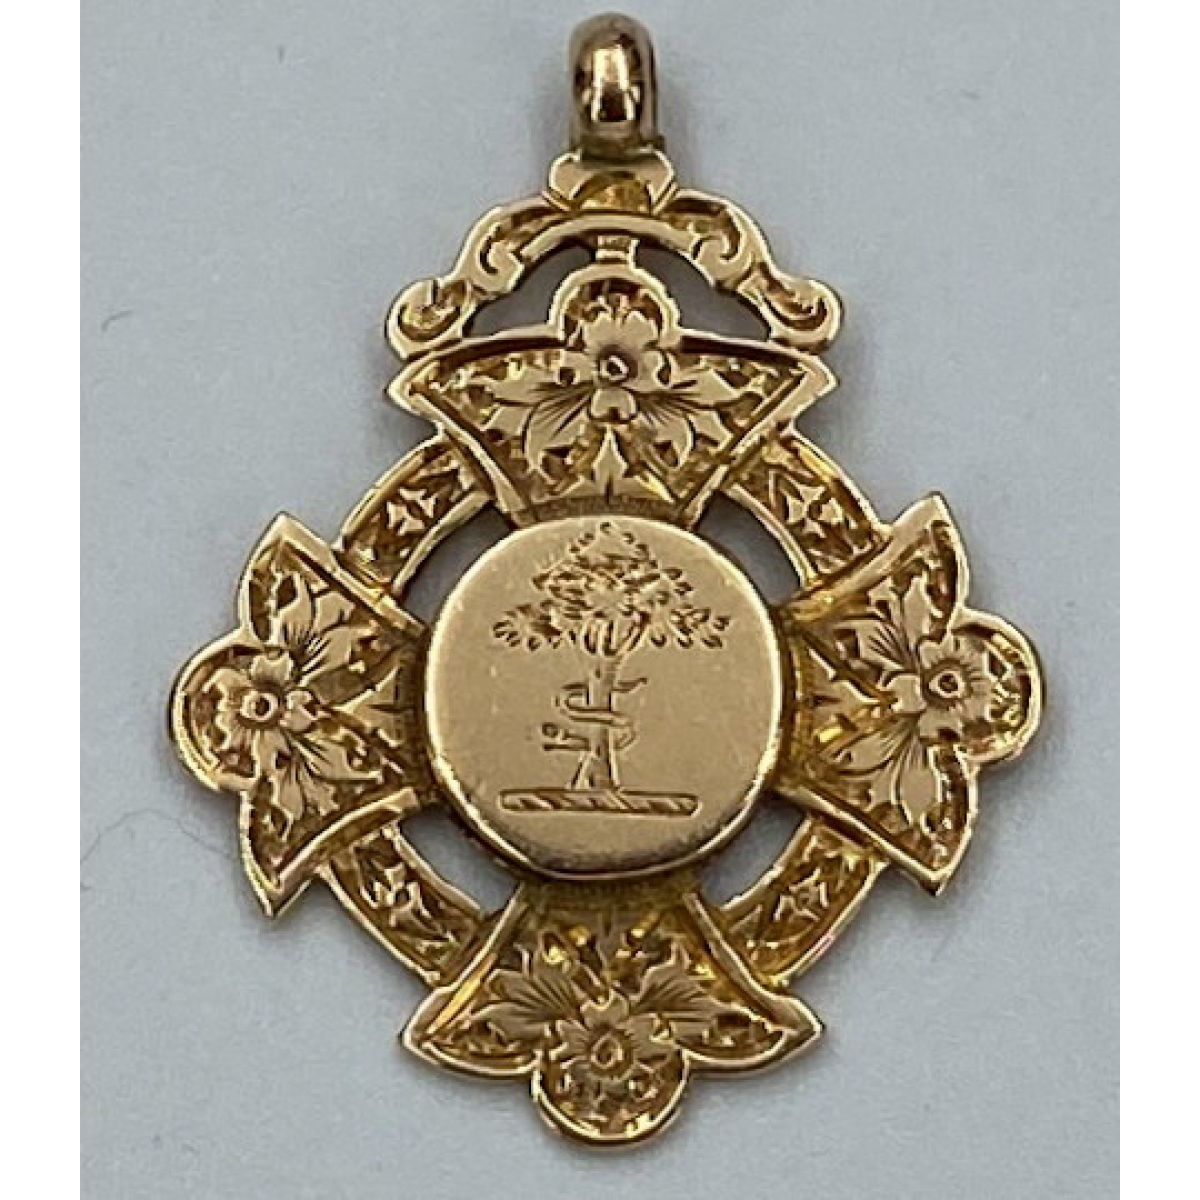 Lovely Antique English Gold Medal Fob - Birthday Present